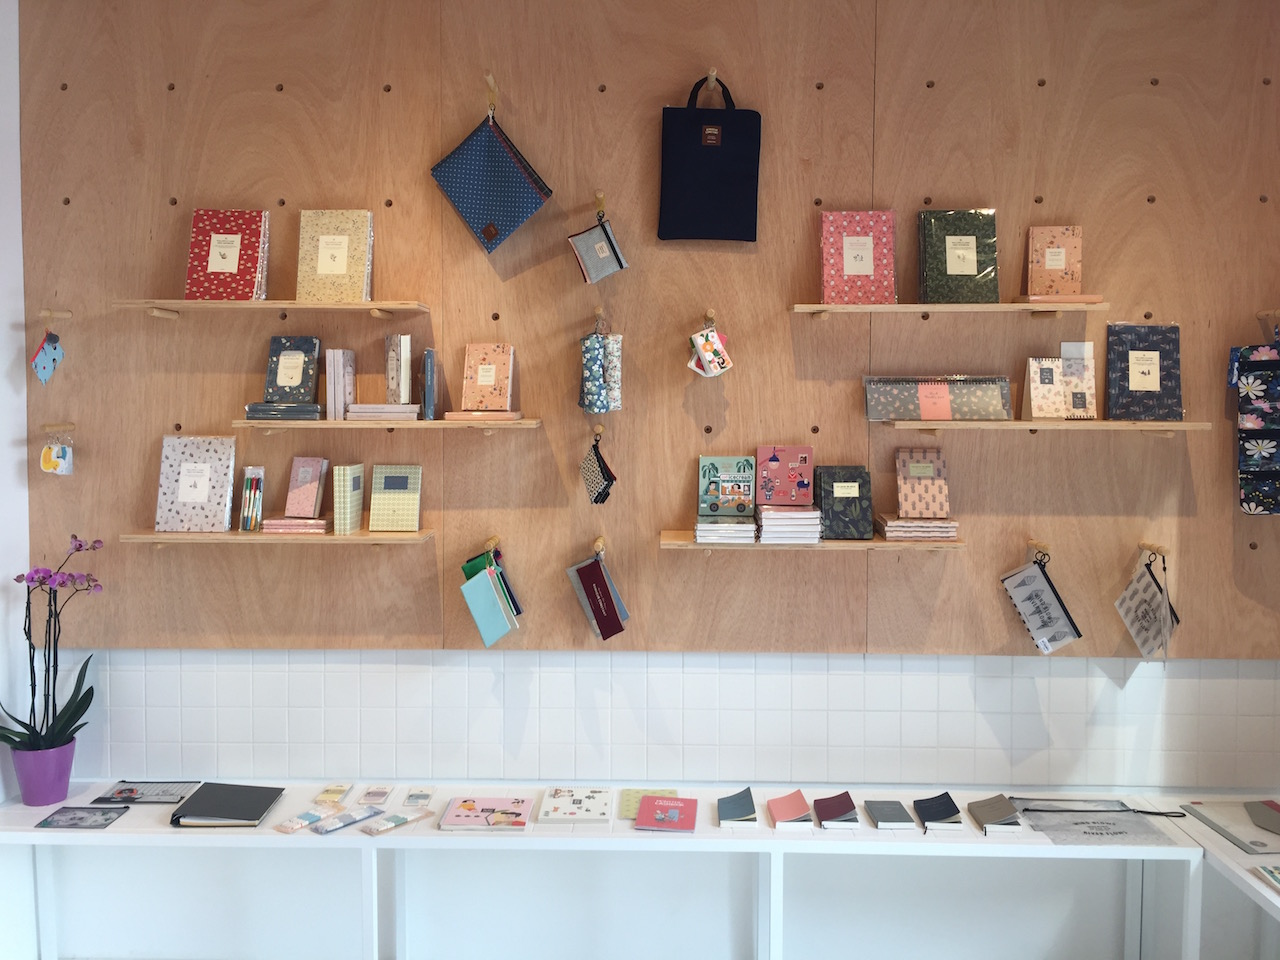 entropía-paperstore-rockinchiclifestyle-6-pg